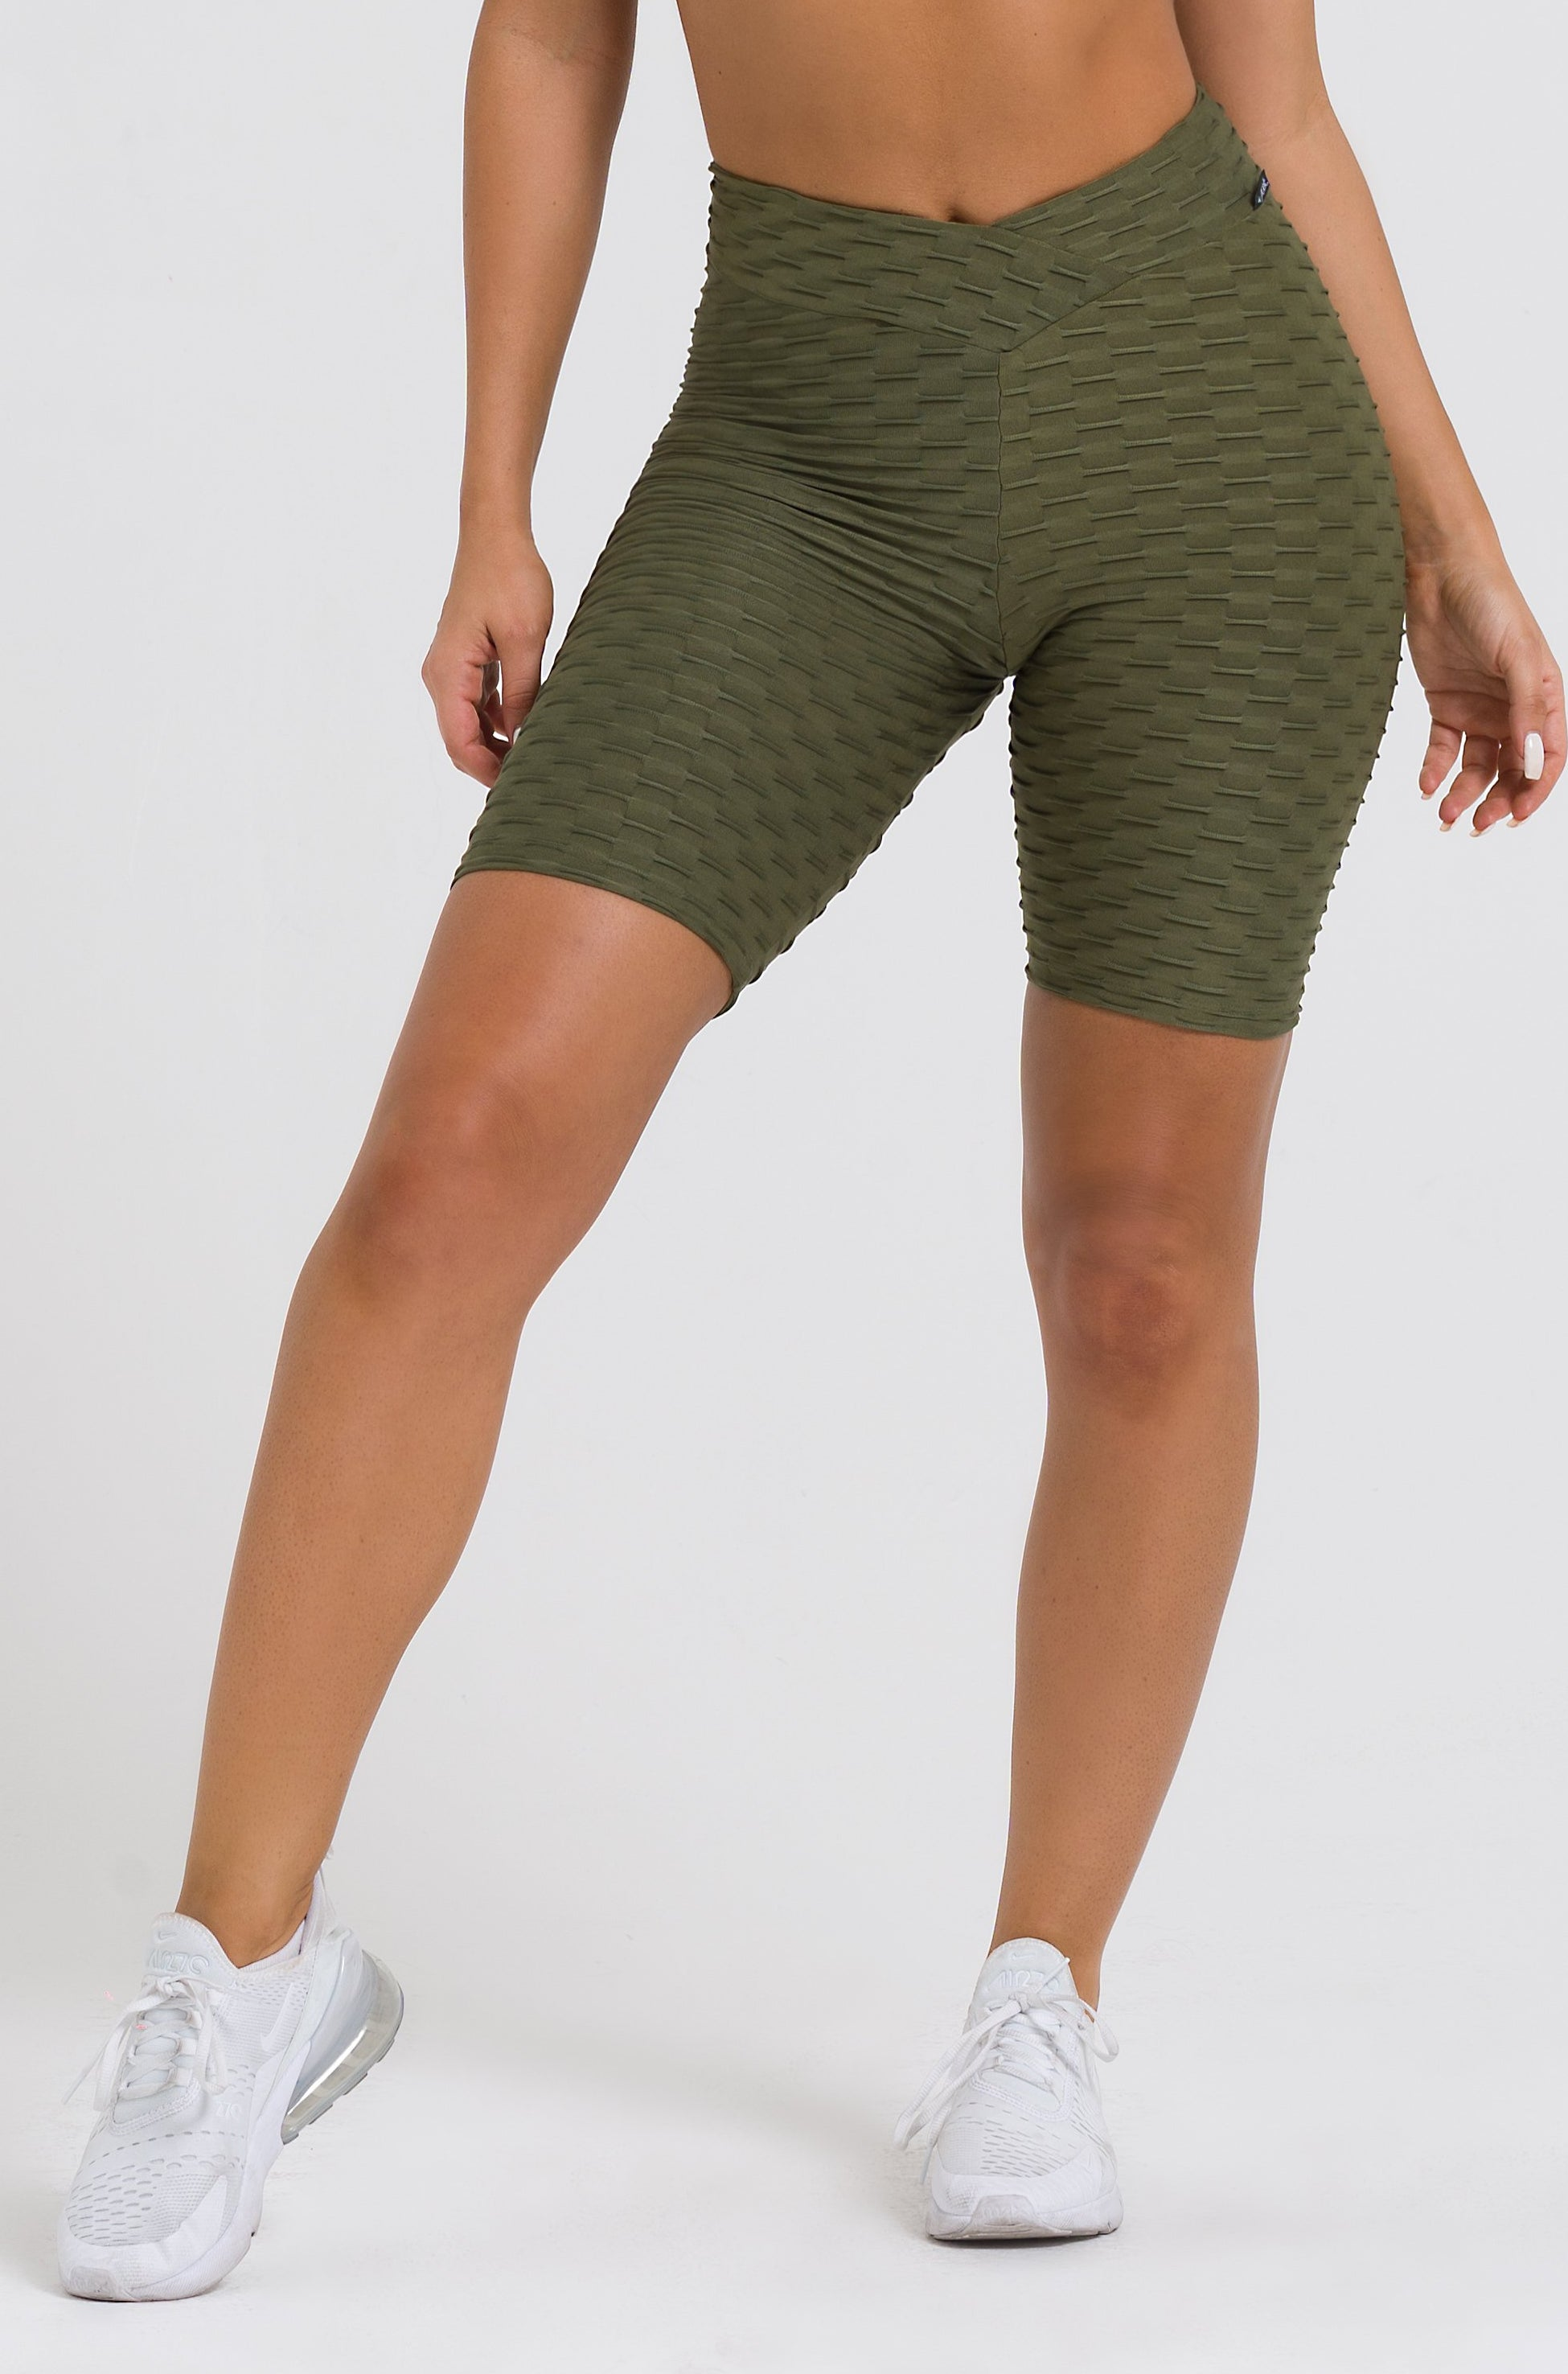 Olive Textured V-Cut Scrunch Biker Shorts